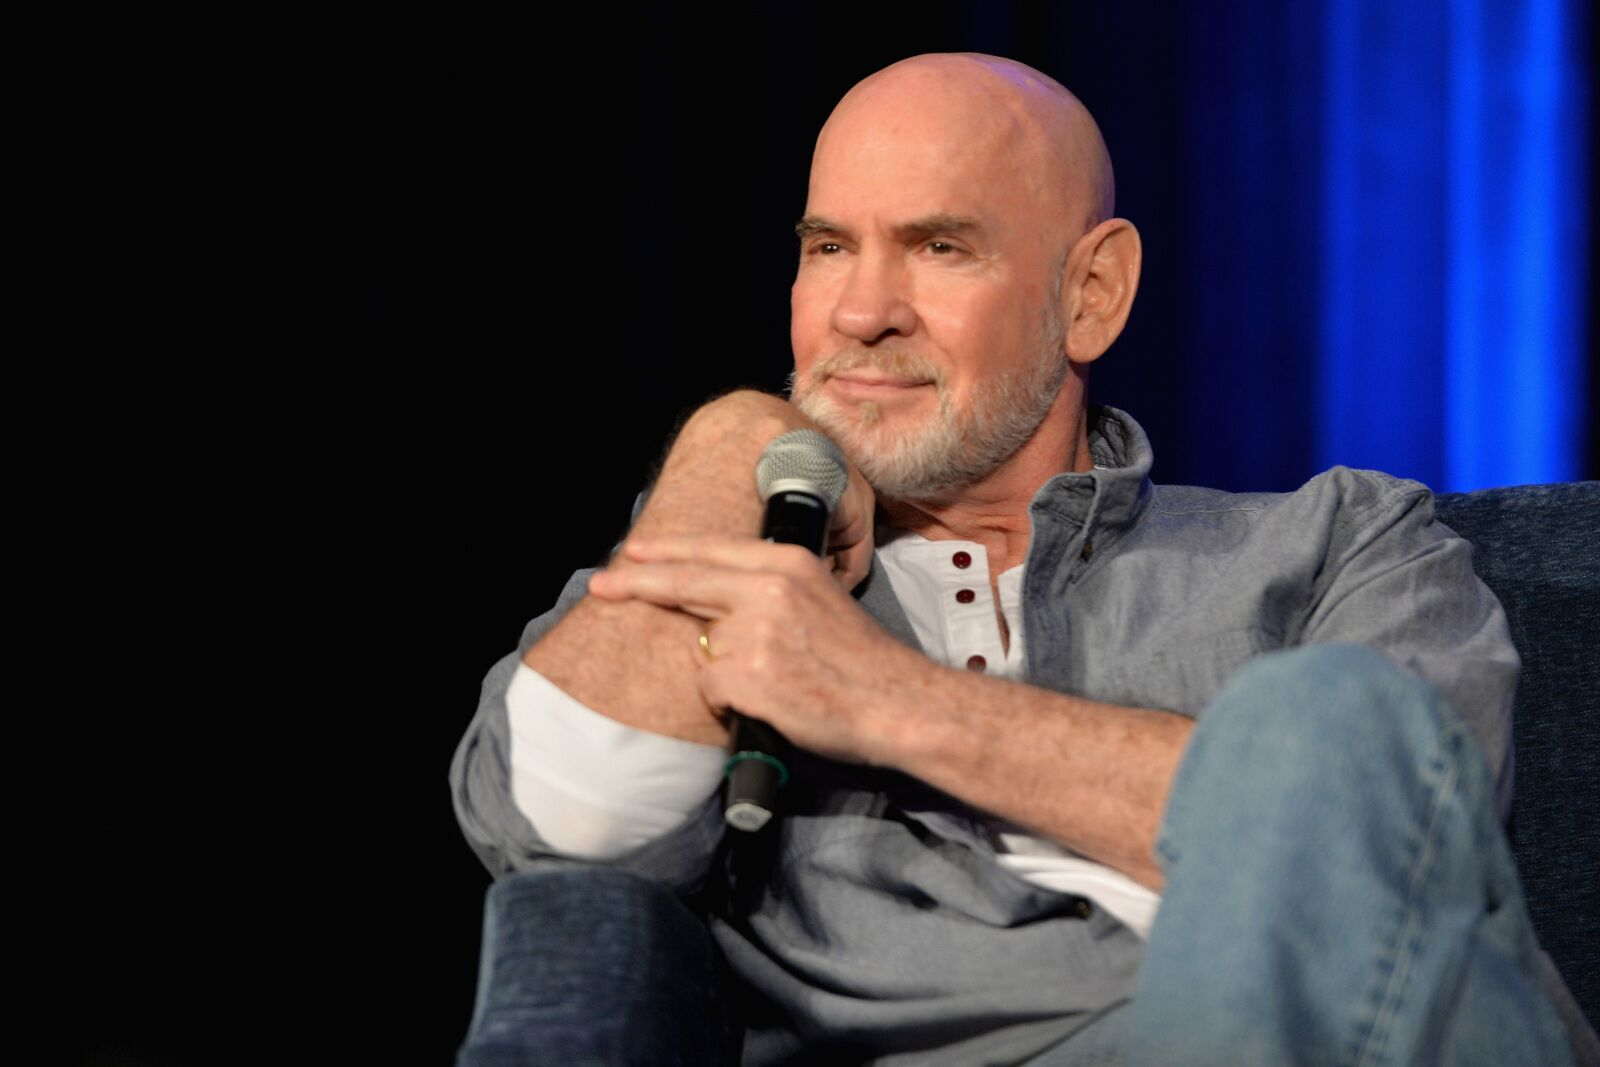 Mitch Pileggi joining Supergirl Season 5 in ancient alien role